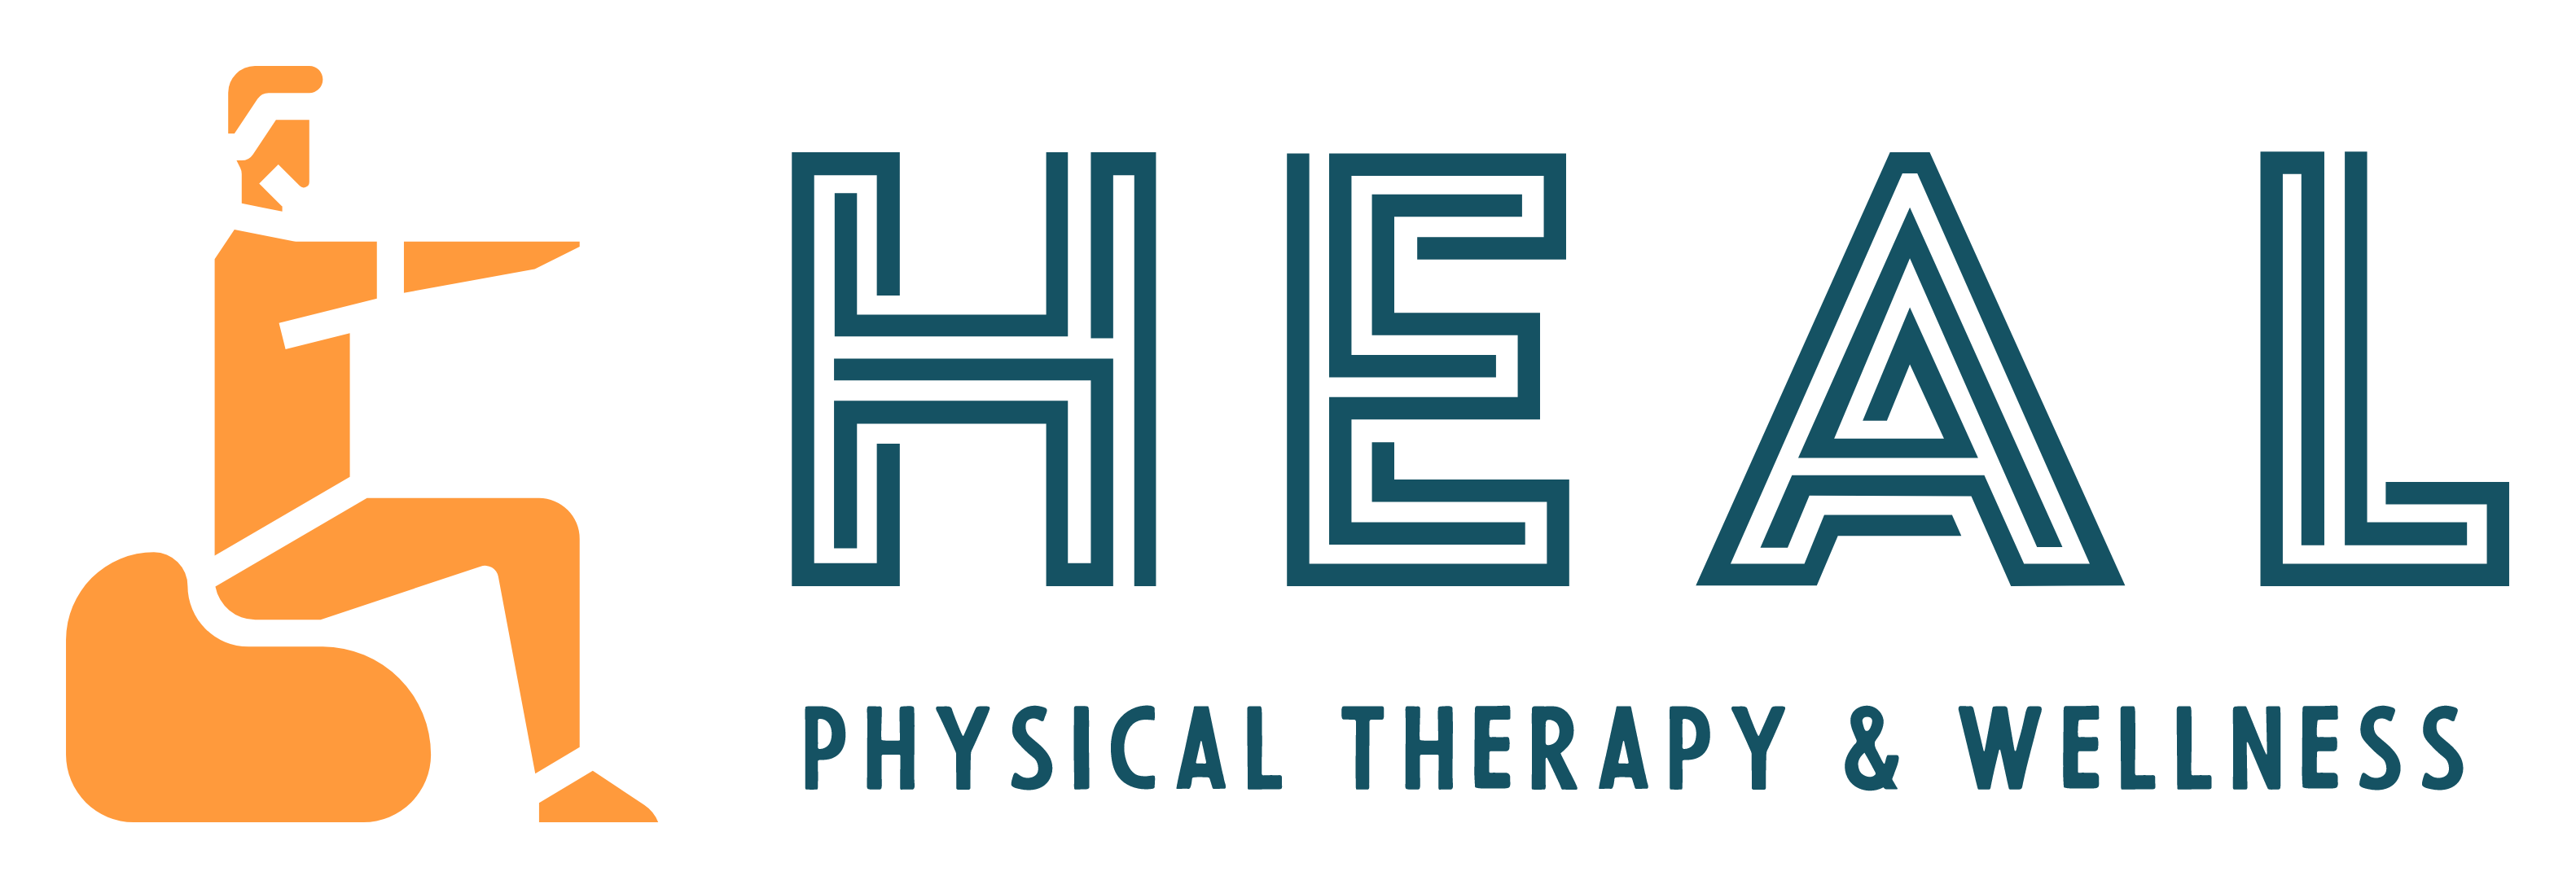 Heal with PT logo